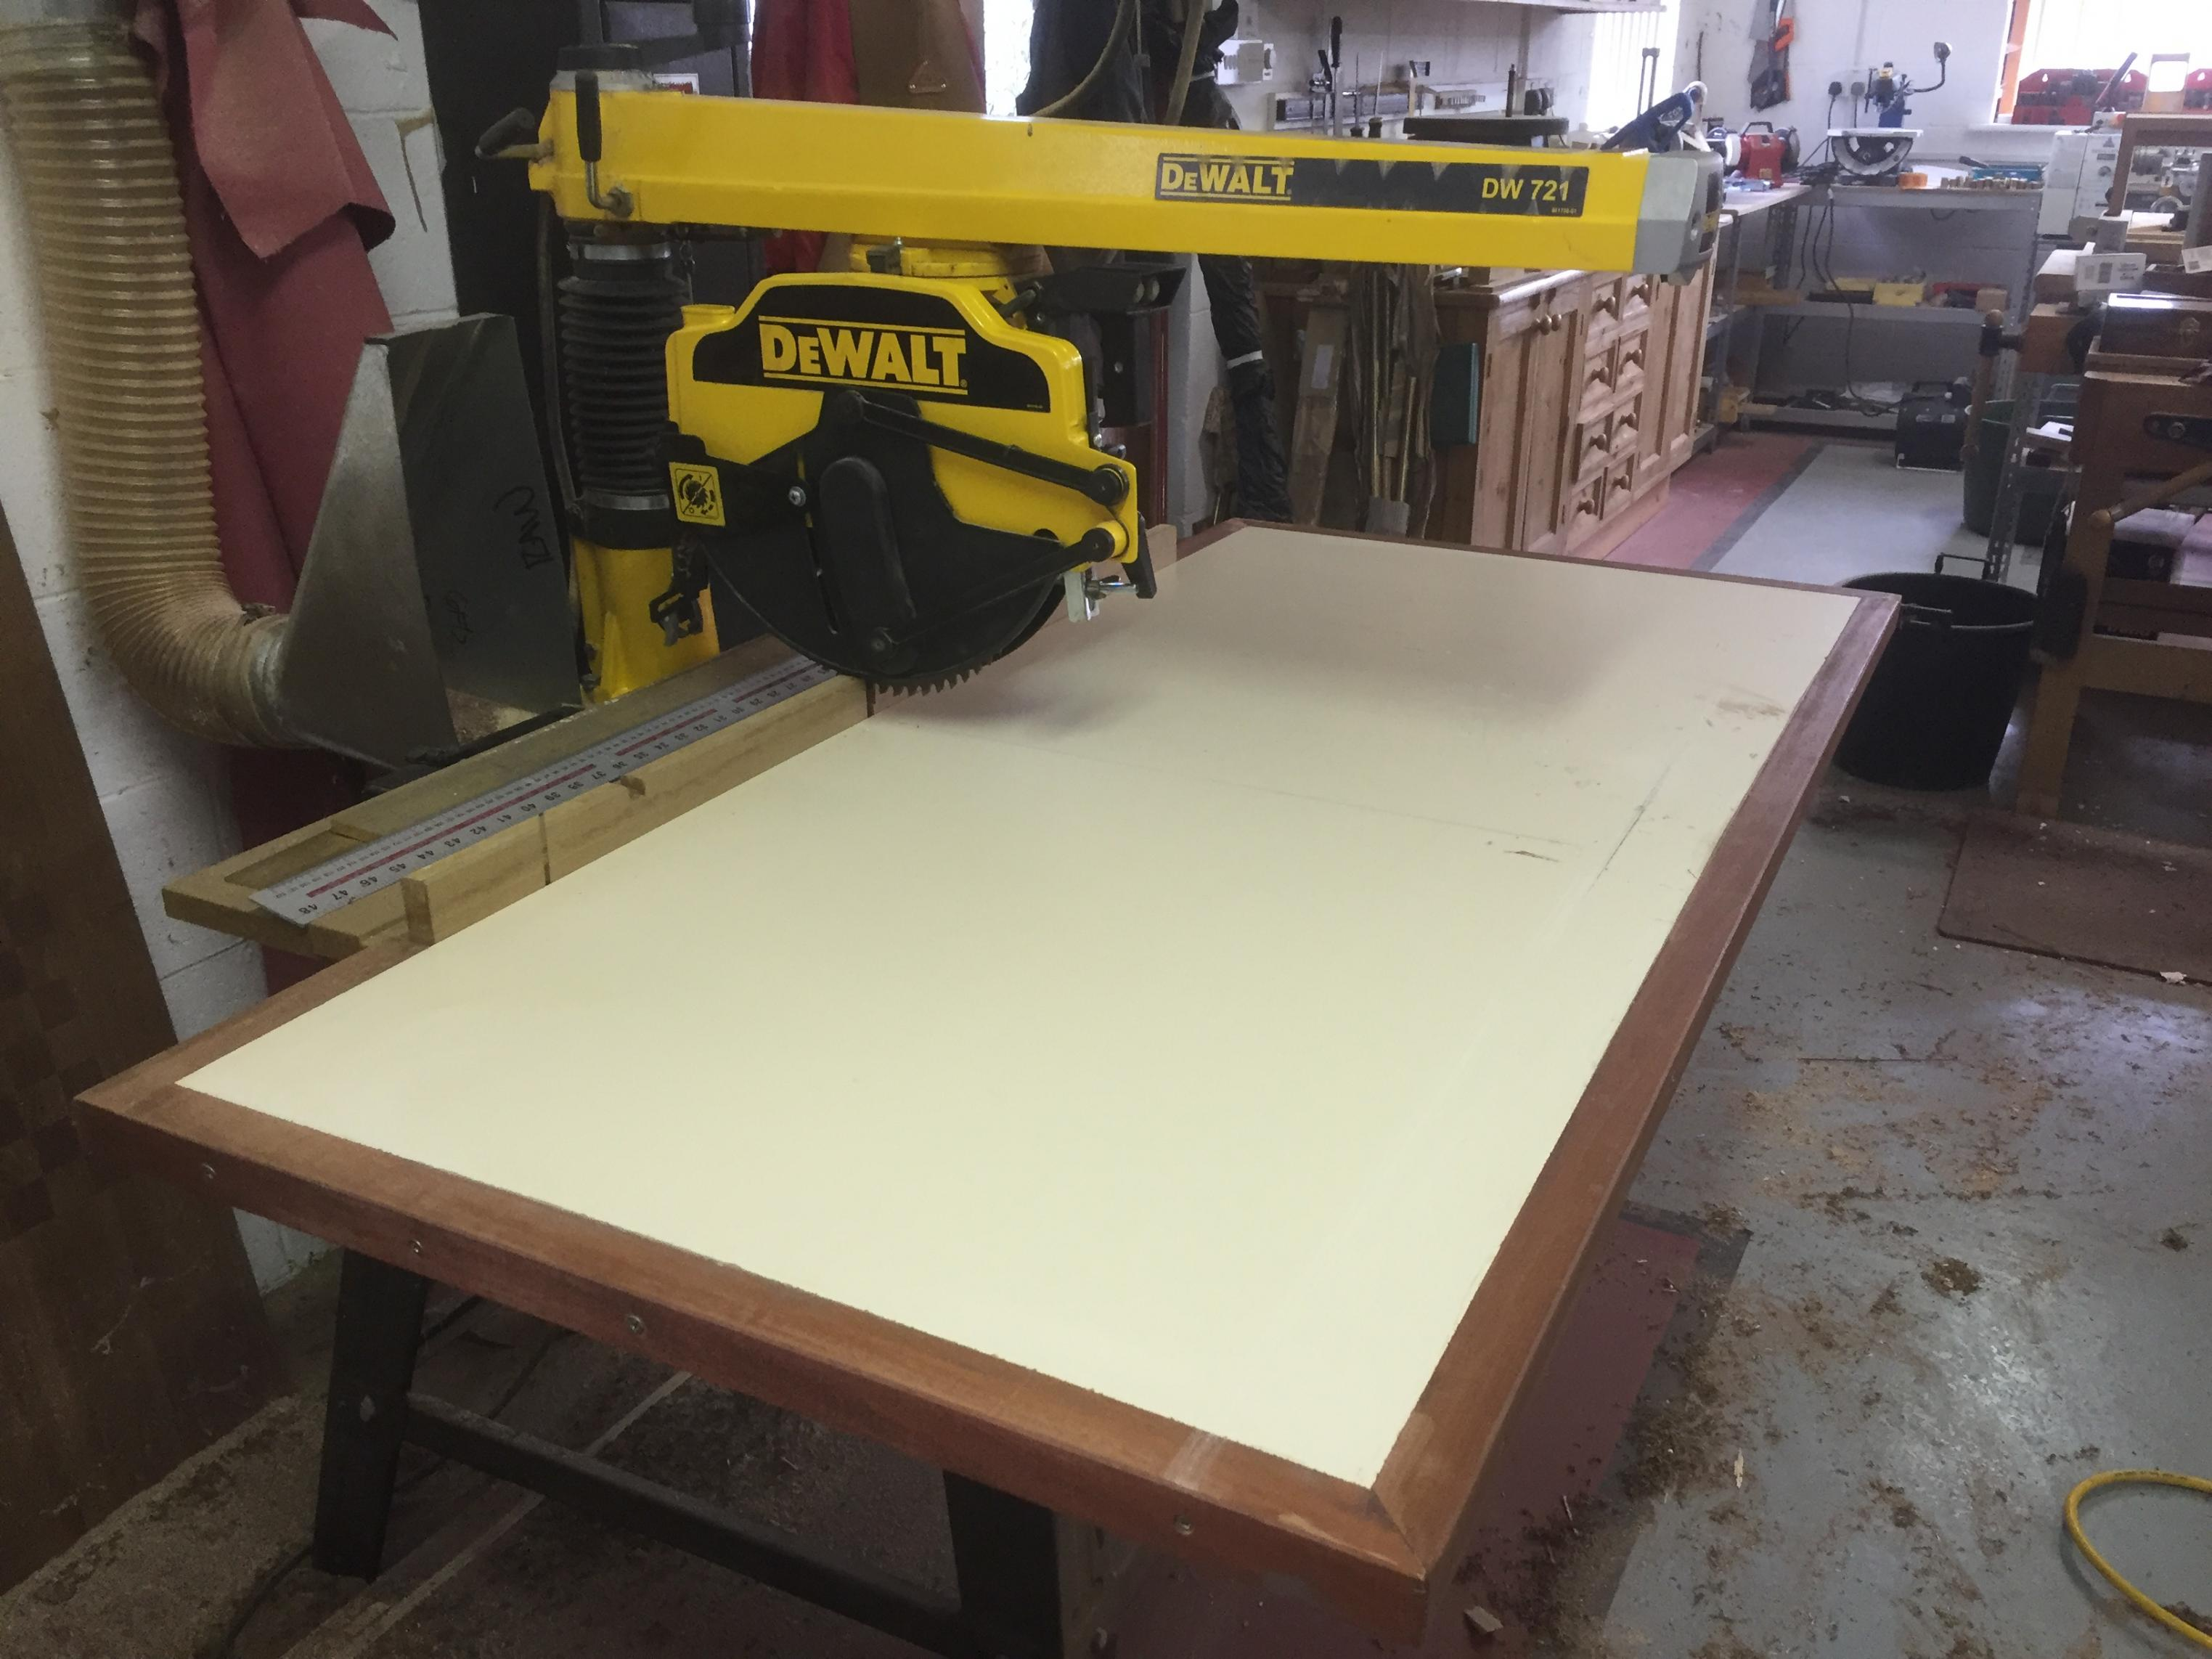 Dewalt Radial Arm Saw Table Dimensions